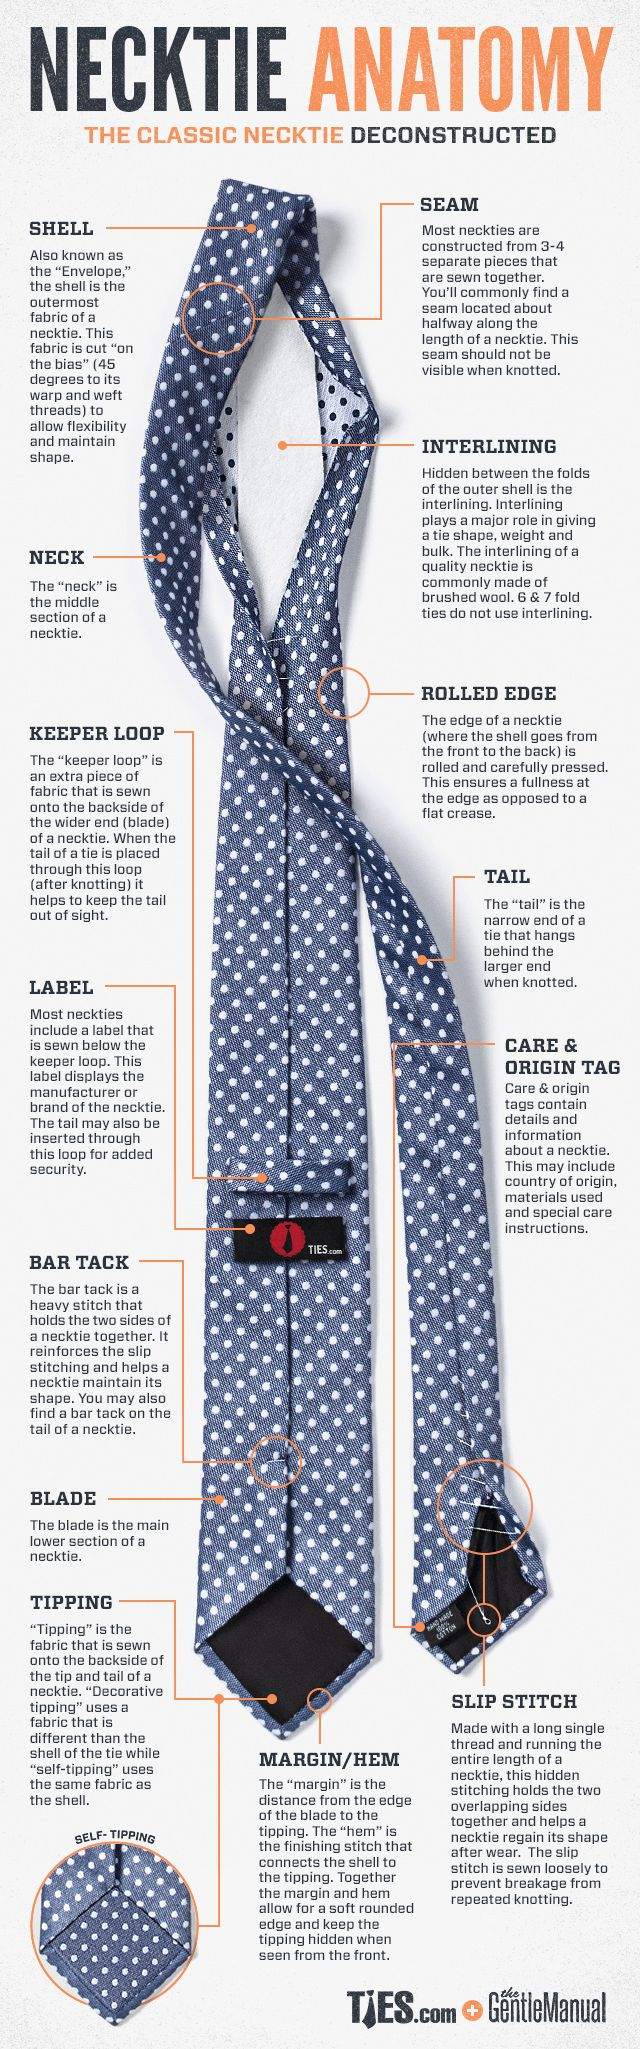 The necktie we know and love today has been around for more than 150 years. From the hand-painted ties of post WWI, to the wild and wide ties of the 1940′s, to the skinny ties of the late 1970′s, the necktie has remained a constant staple of men's fashion. Though countless men have sported this timeless accessory, not many are true connoisseurs.